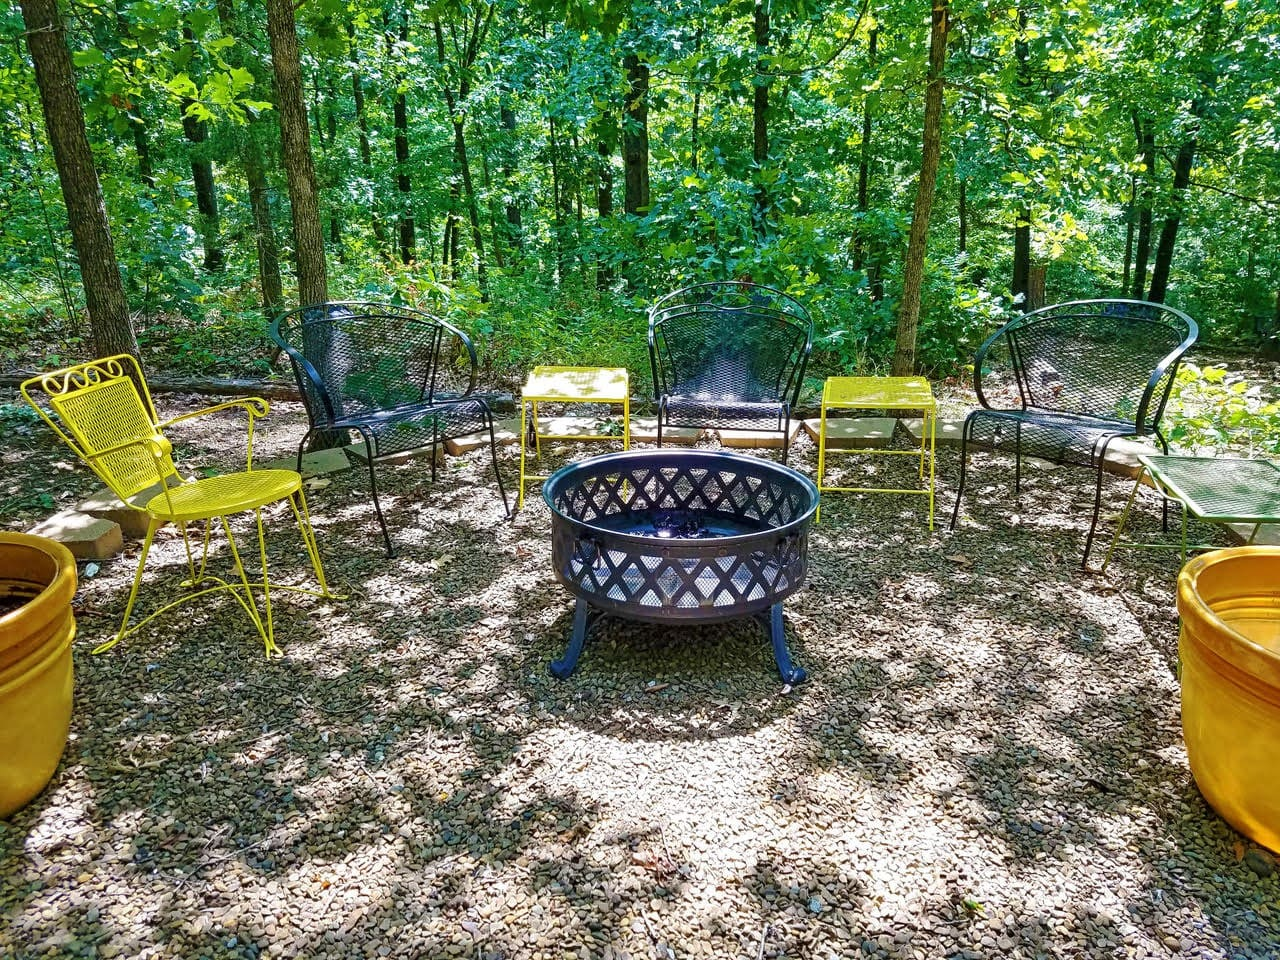 The Blue Door - is a spacious 1,000 sq ft apartment suite that overlooks a totally private and tranquil wooded setting. This is one of several seating areas in the woods and around the property.